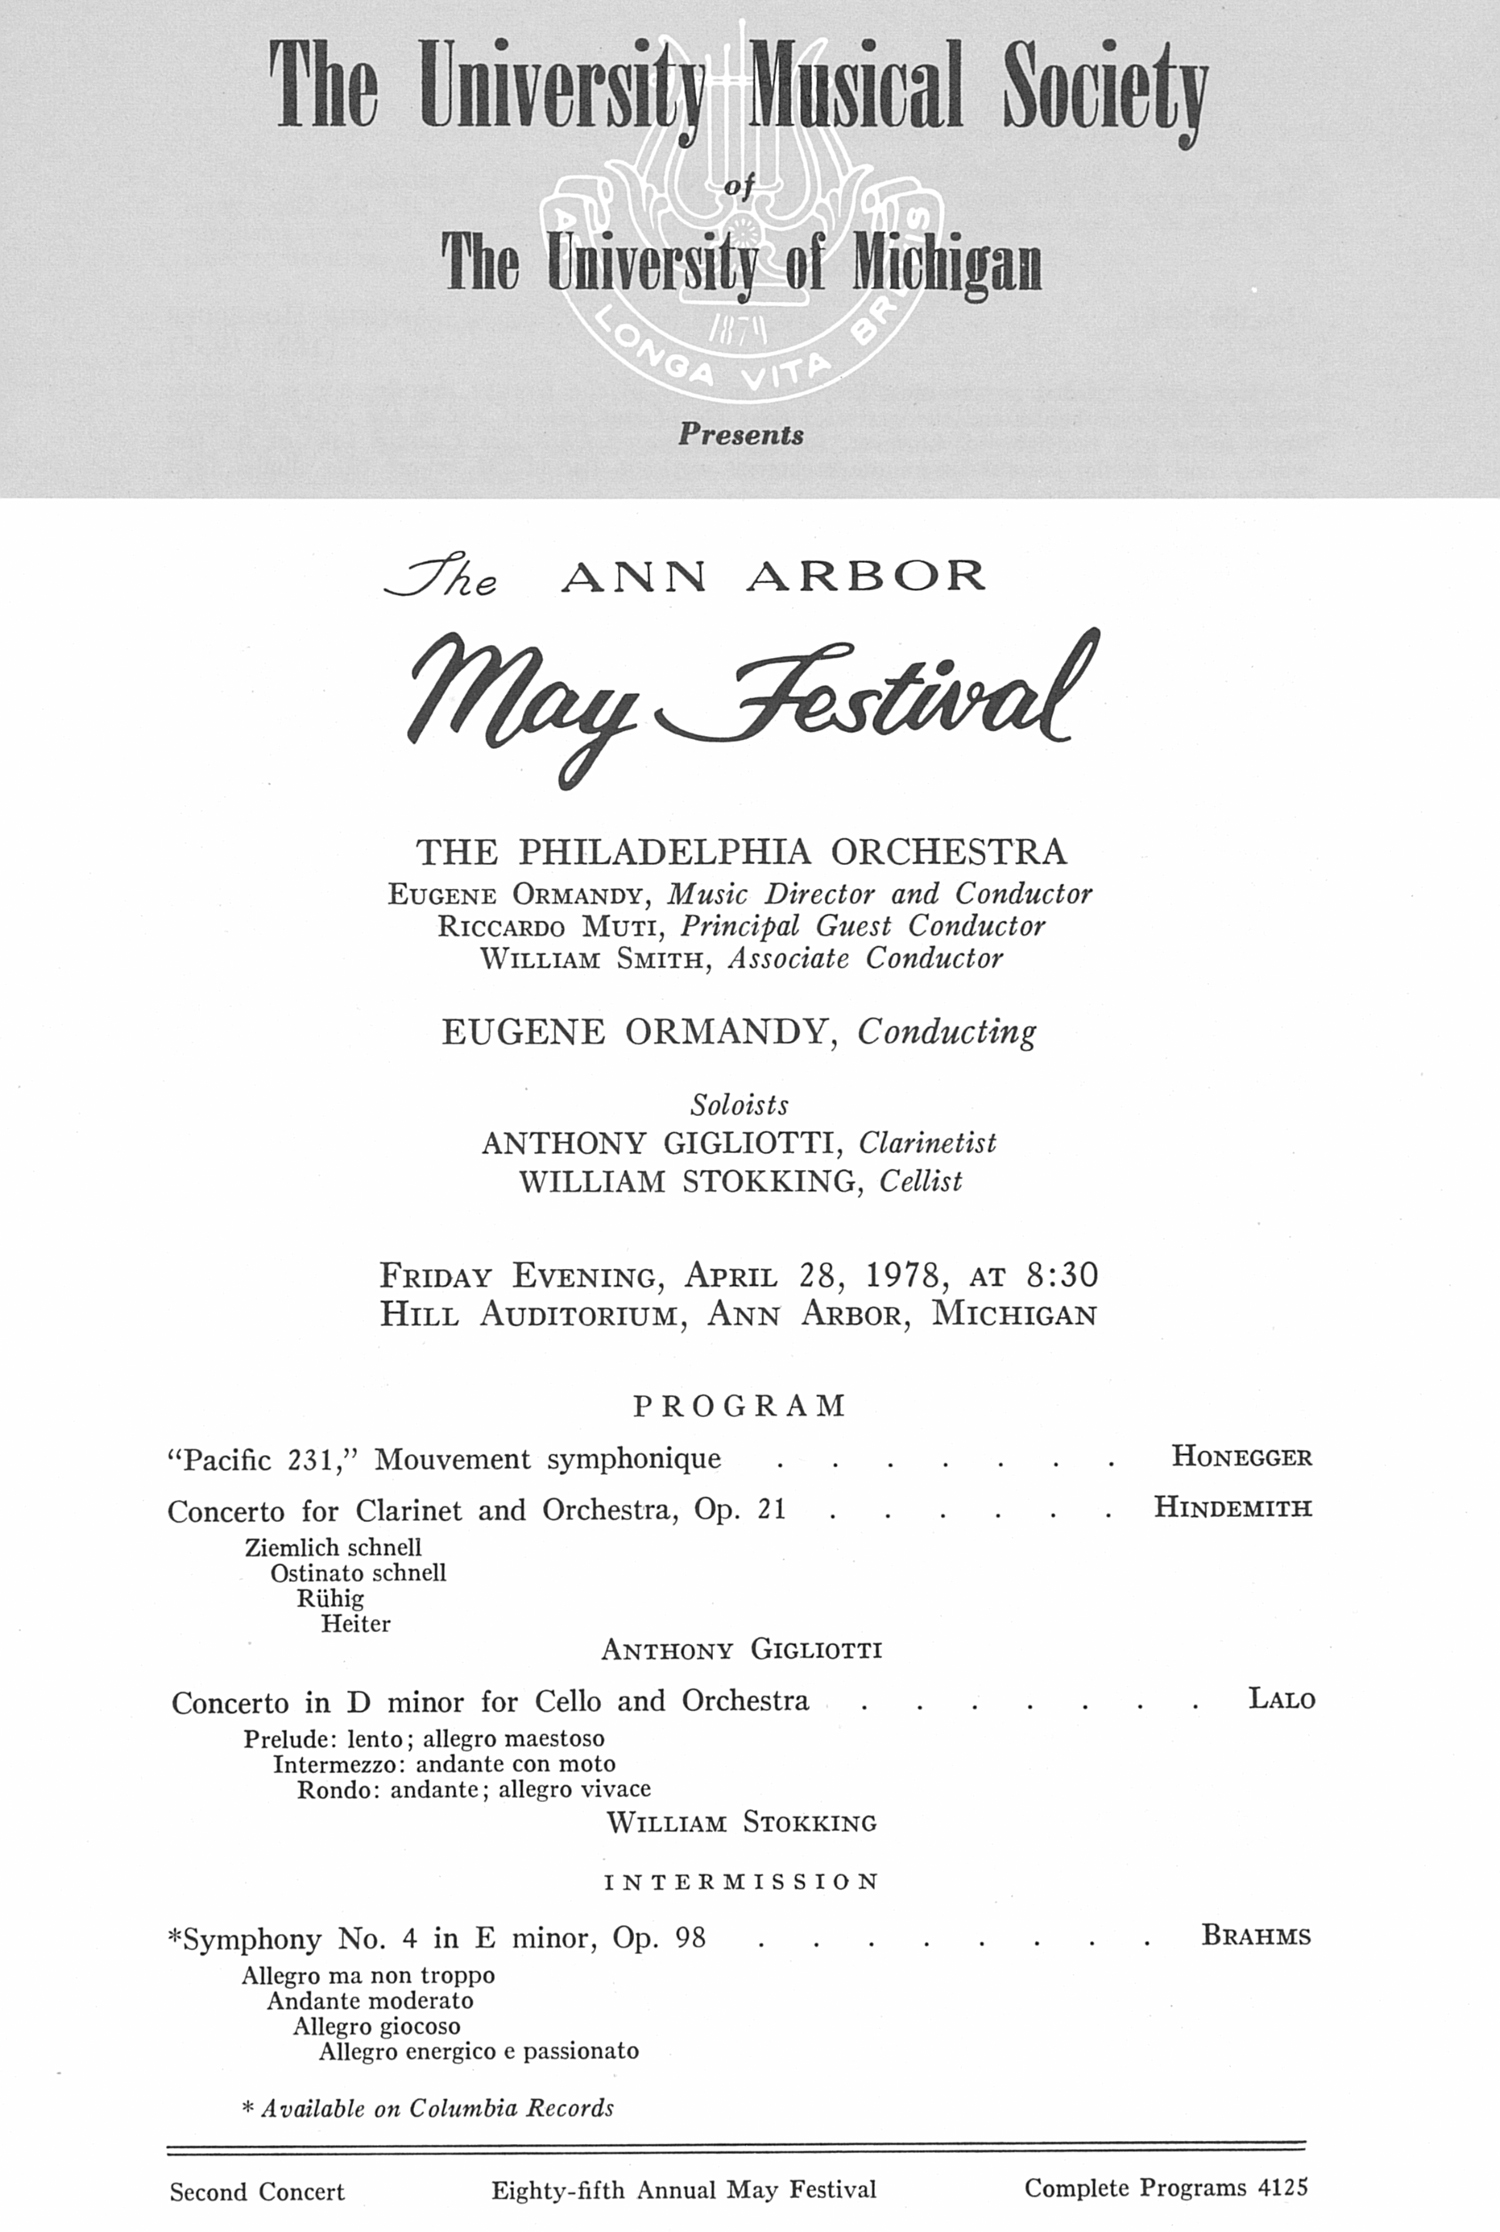 UMS Concert Program, April 28, 1978: The Ann Arbor May Festival -- The Philadelphia Orchestra image